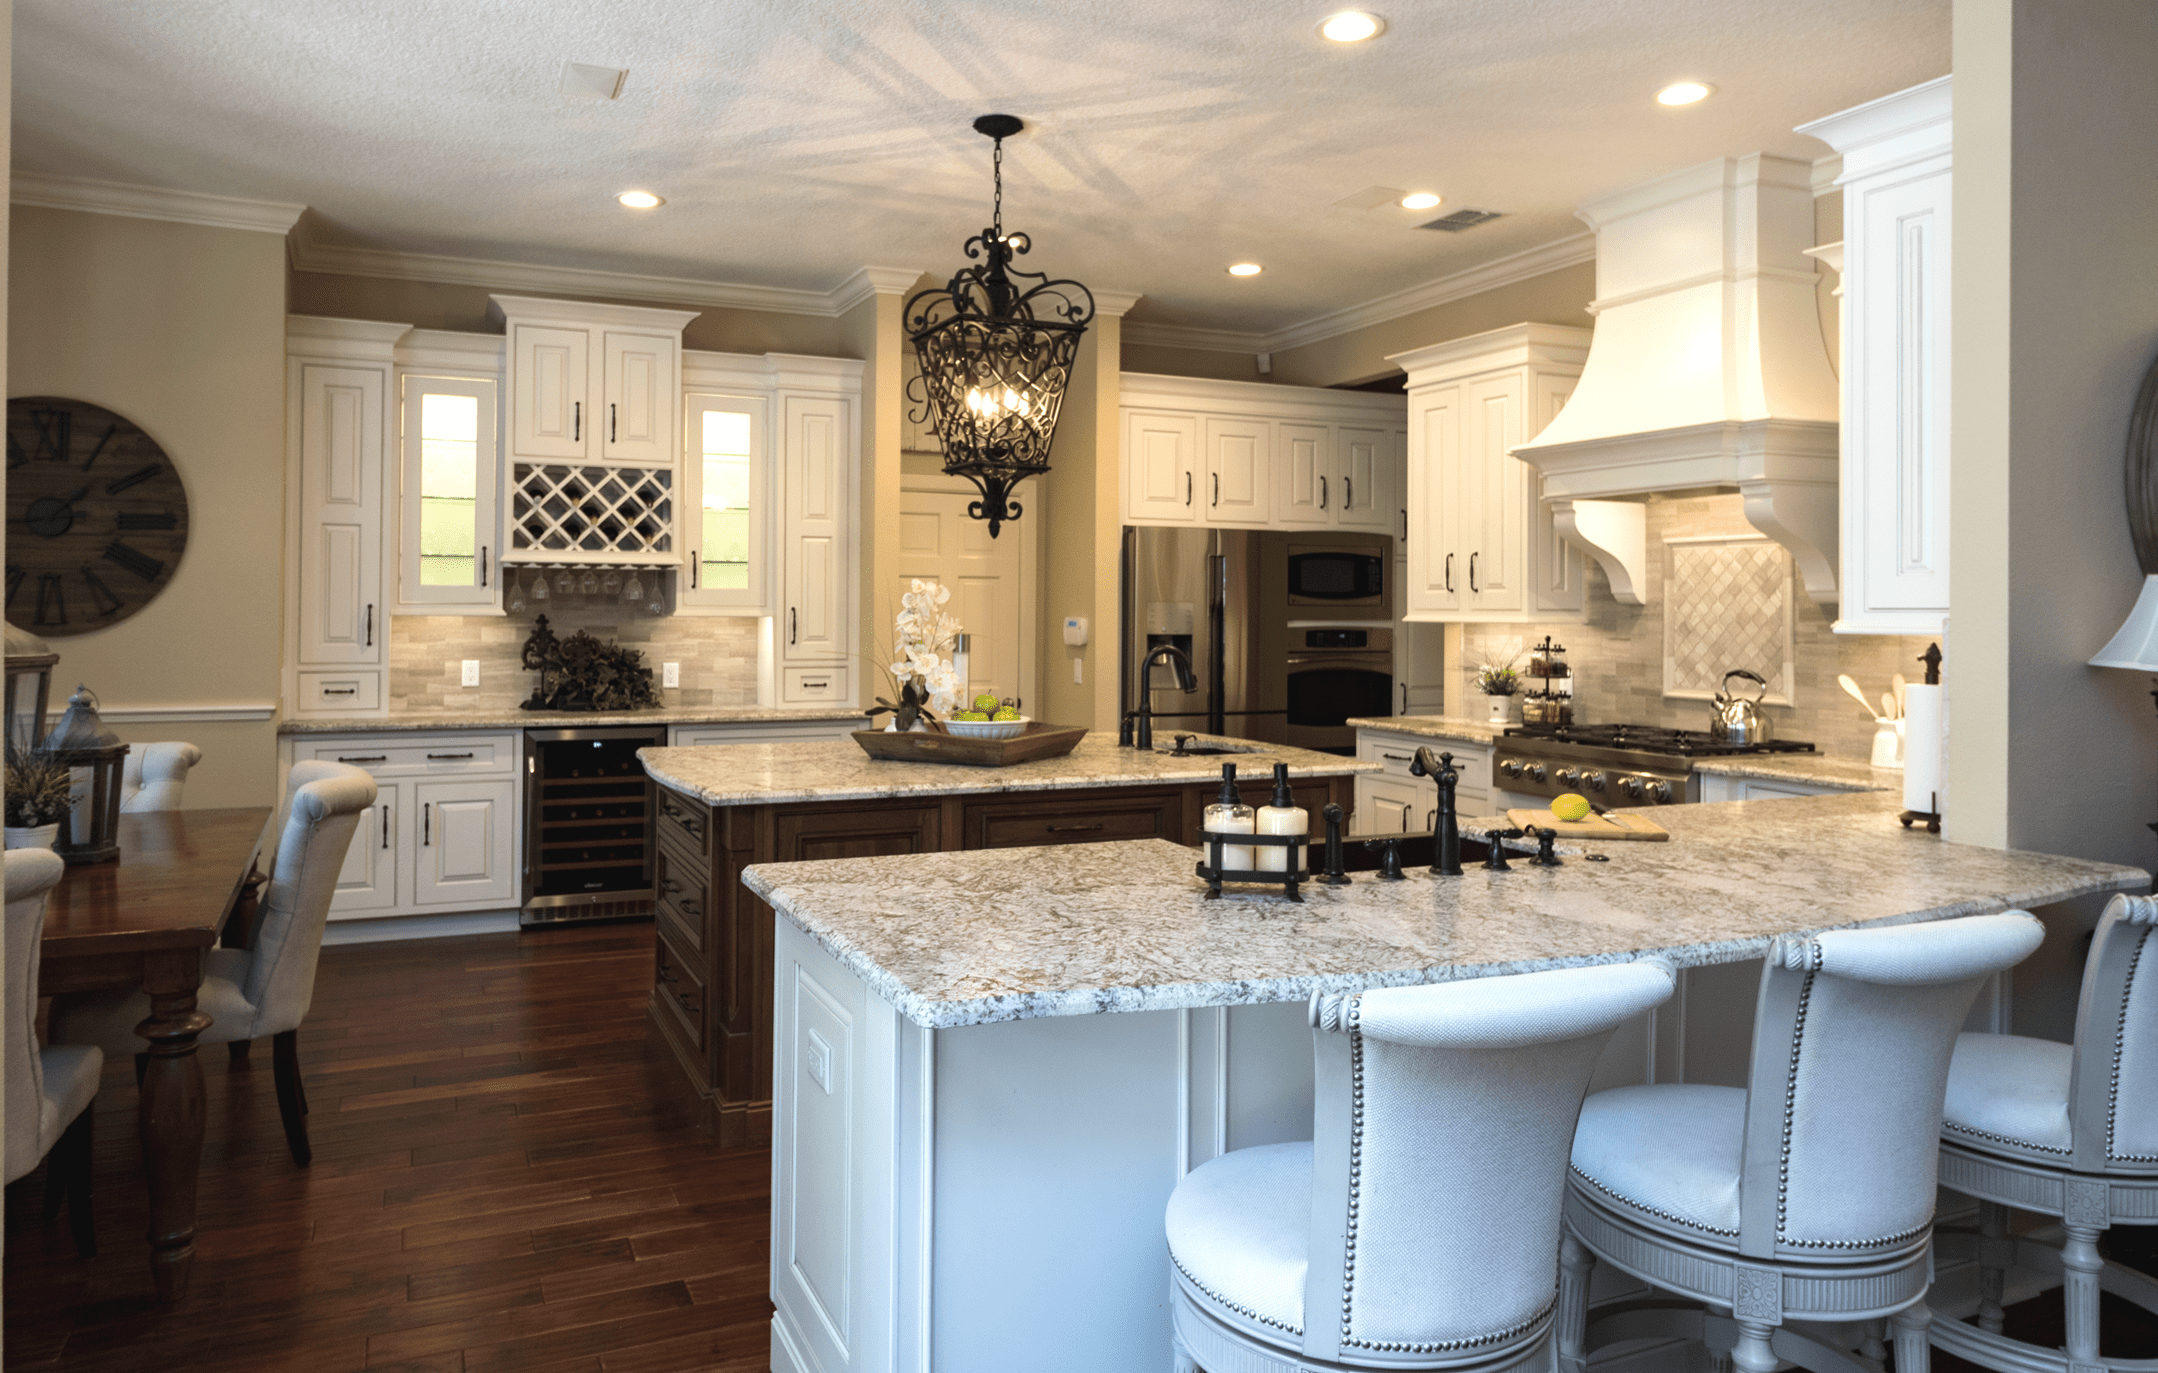 kitchen remodeling orlando industrial looking ideas and bathroom services in kbf